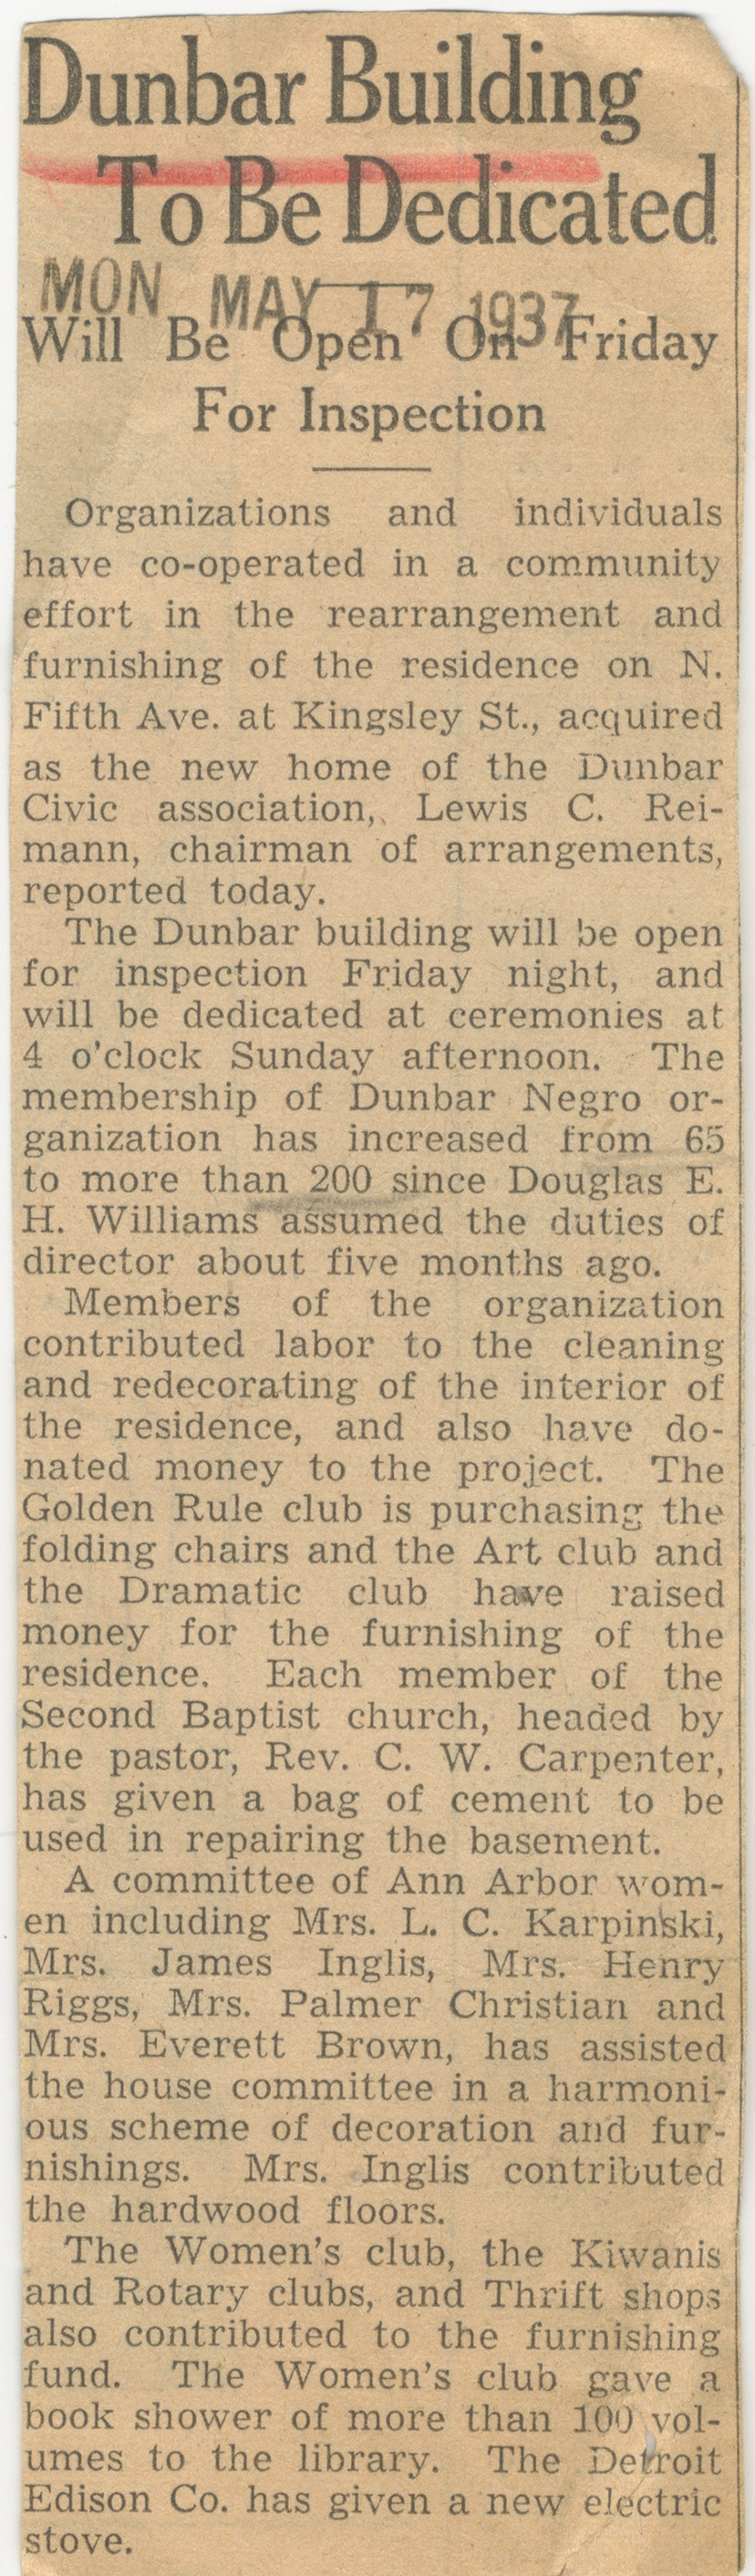 Dunbar Building To Be Dedicated image